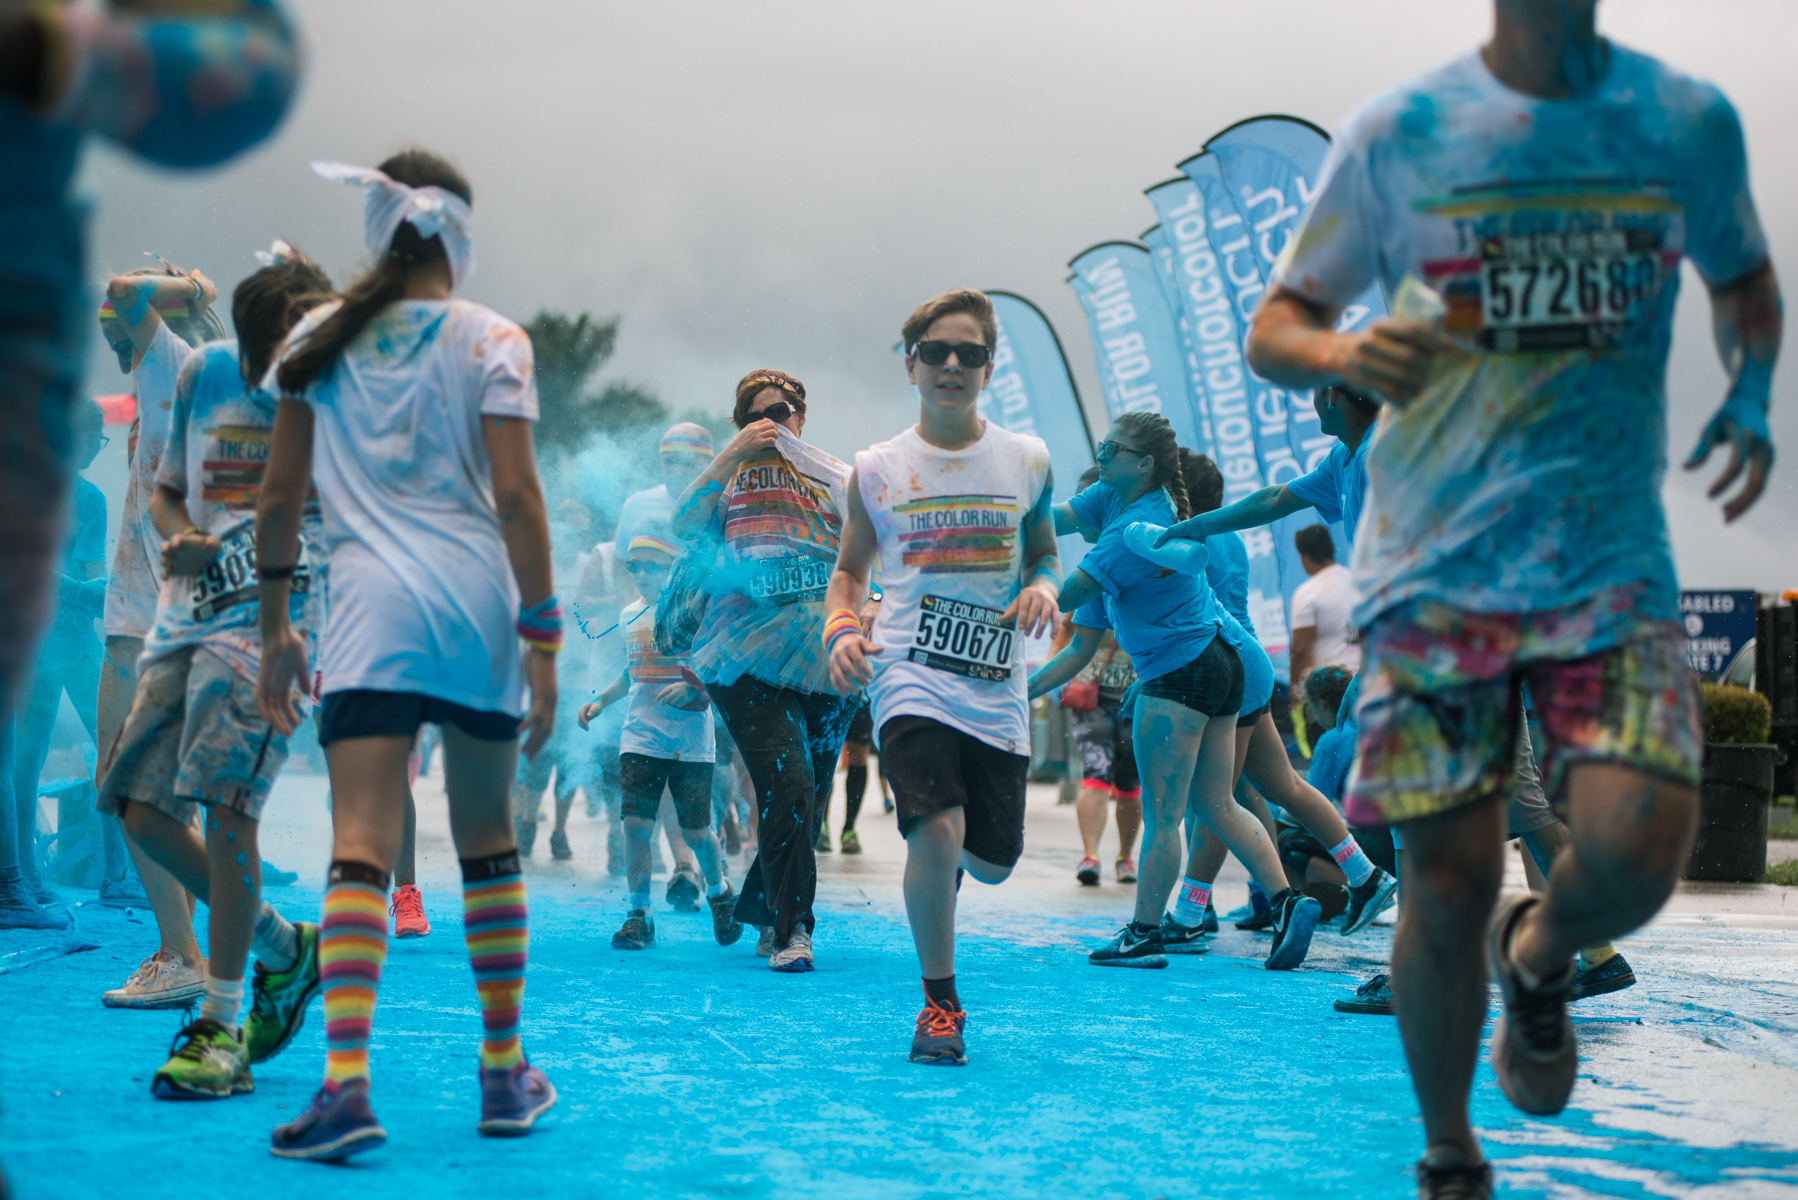 Color_Run-66.jpg